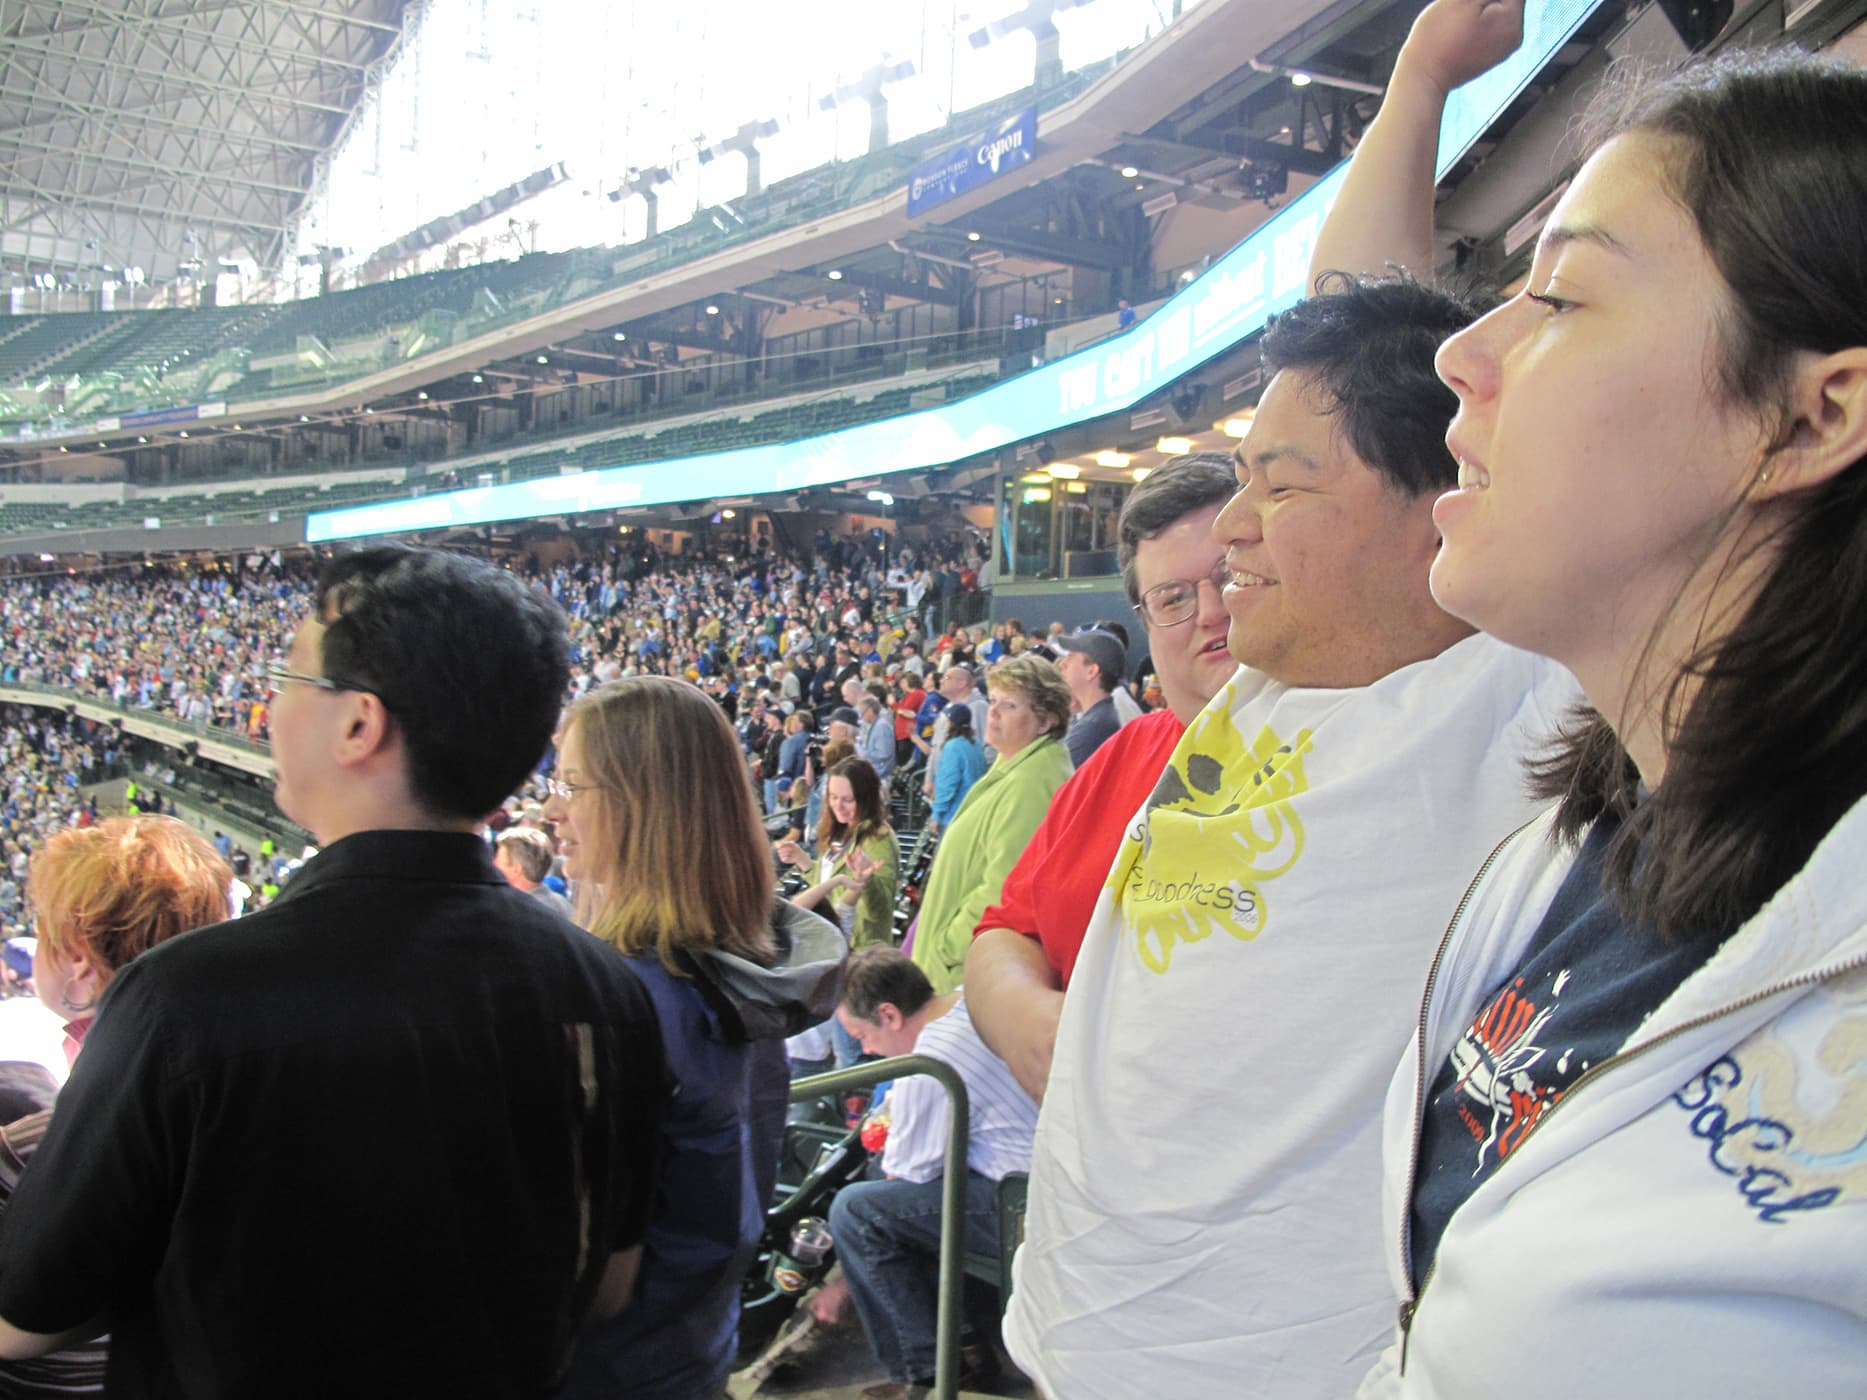 Seventh inning stretch at a Brewers game at Miller Park in Milwaukee, Wisconsin